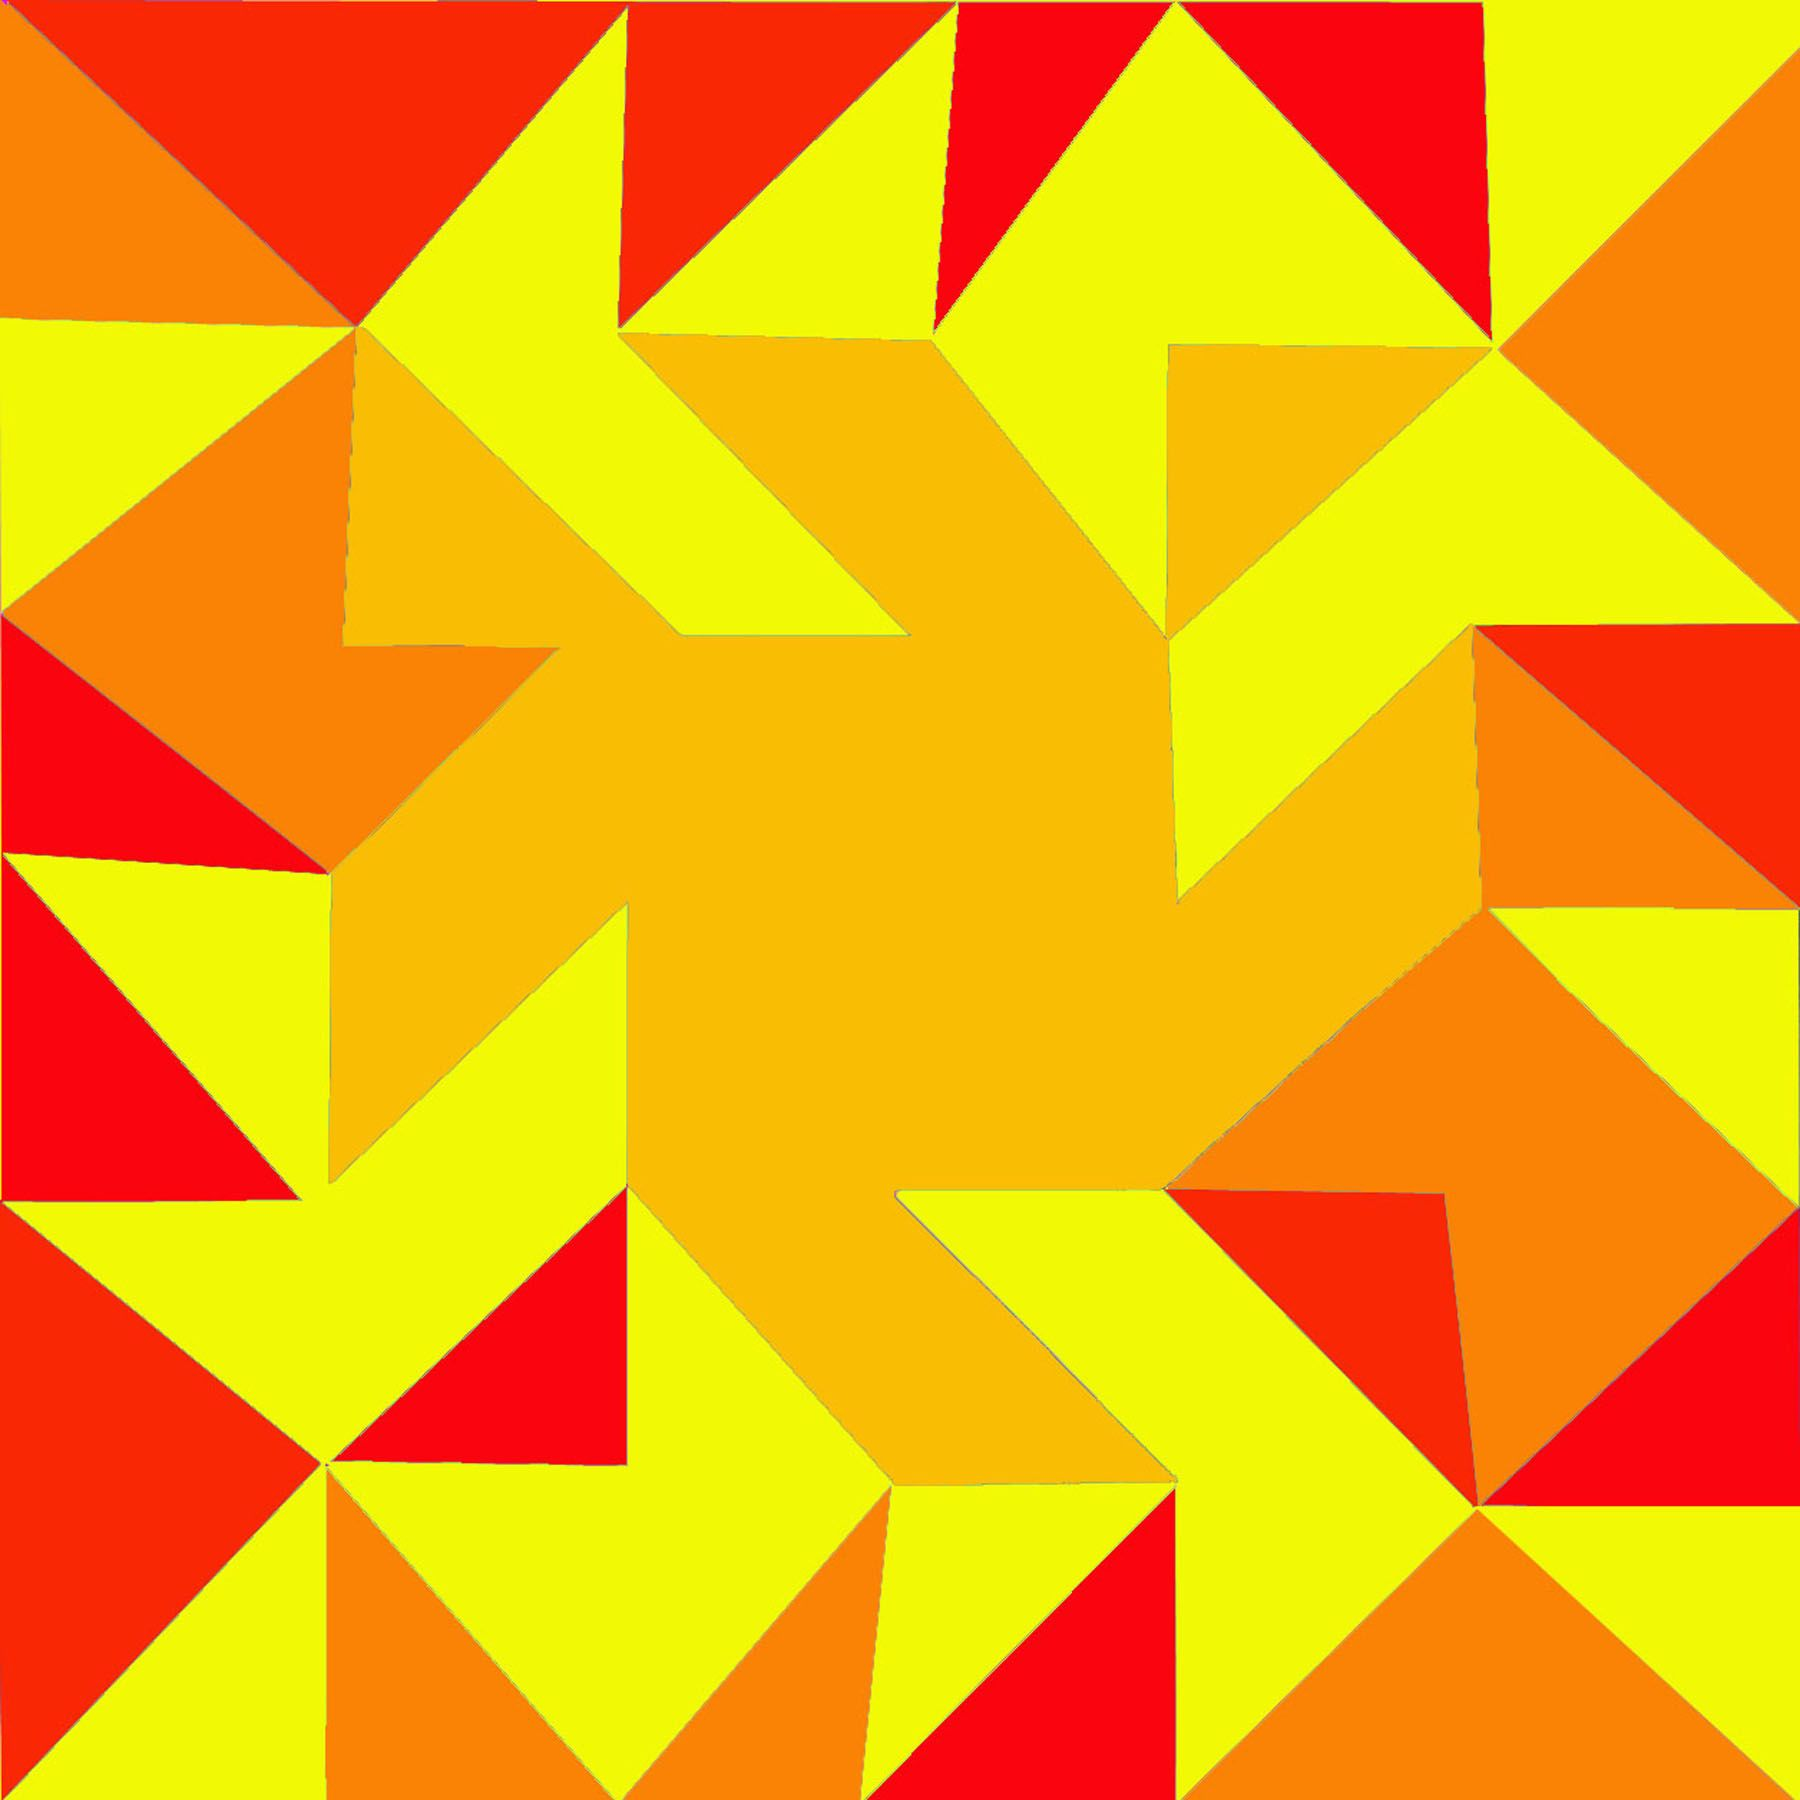 contemporary art with warm colors - Google Search | Lighting ...